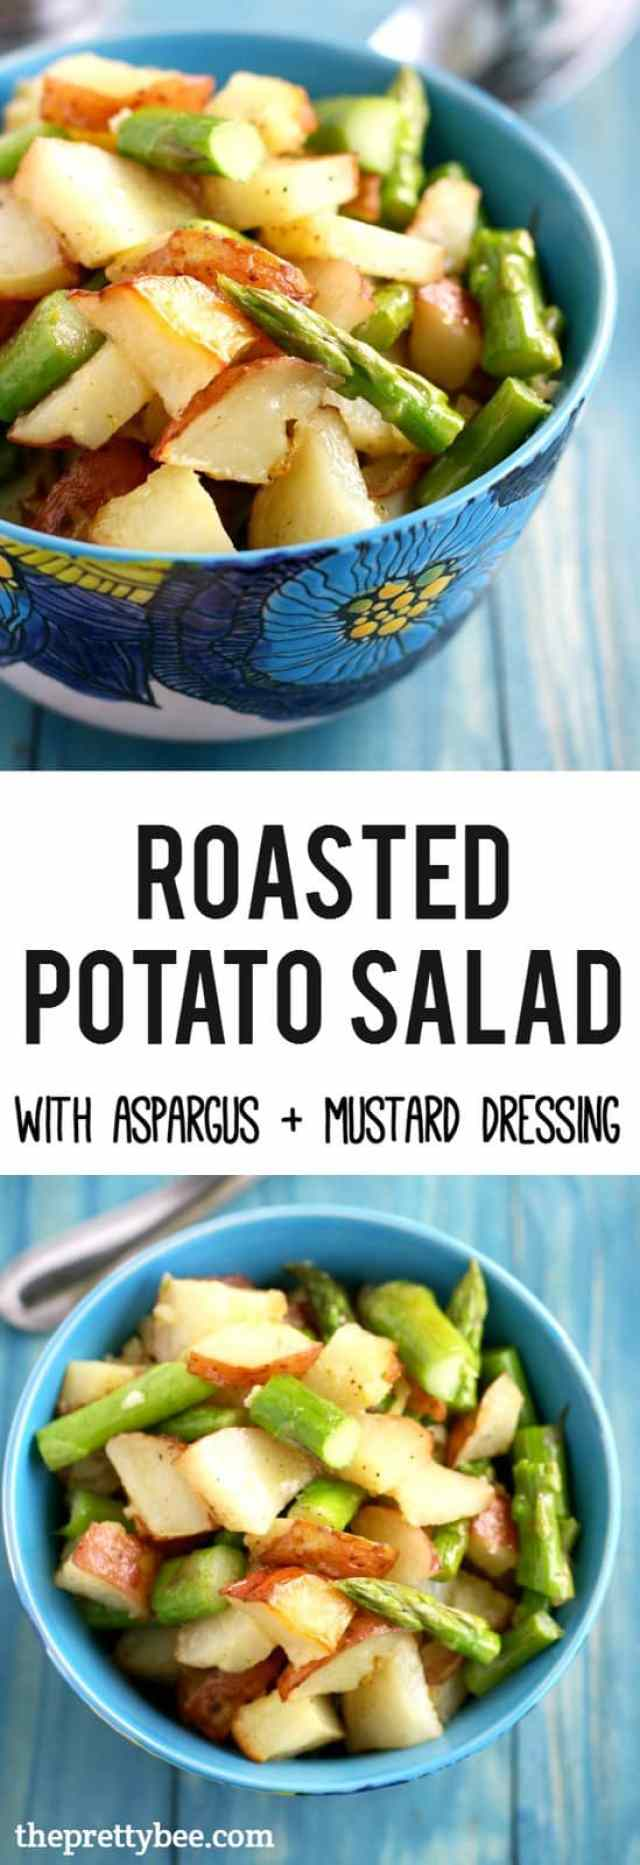 Delicious roasted potato salad is made extra special with asparagus and a tasty mustard dressing.